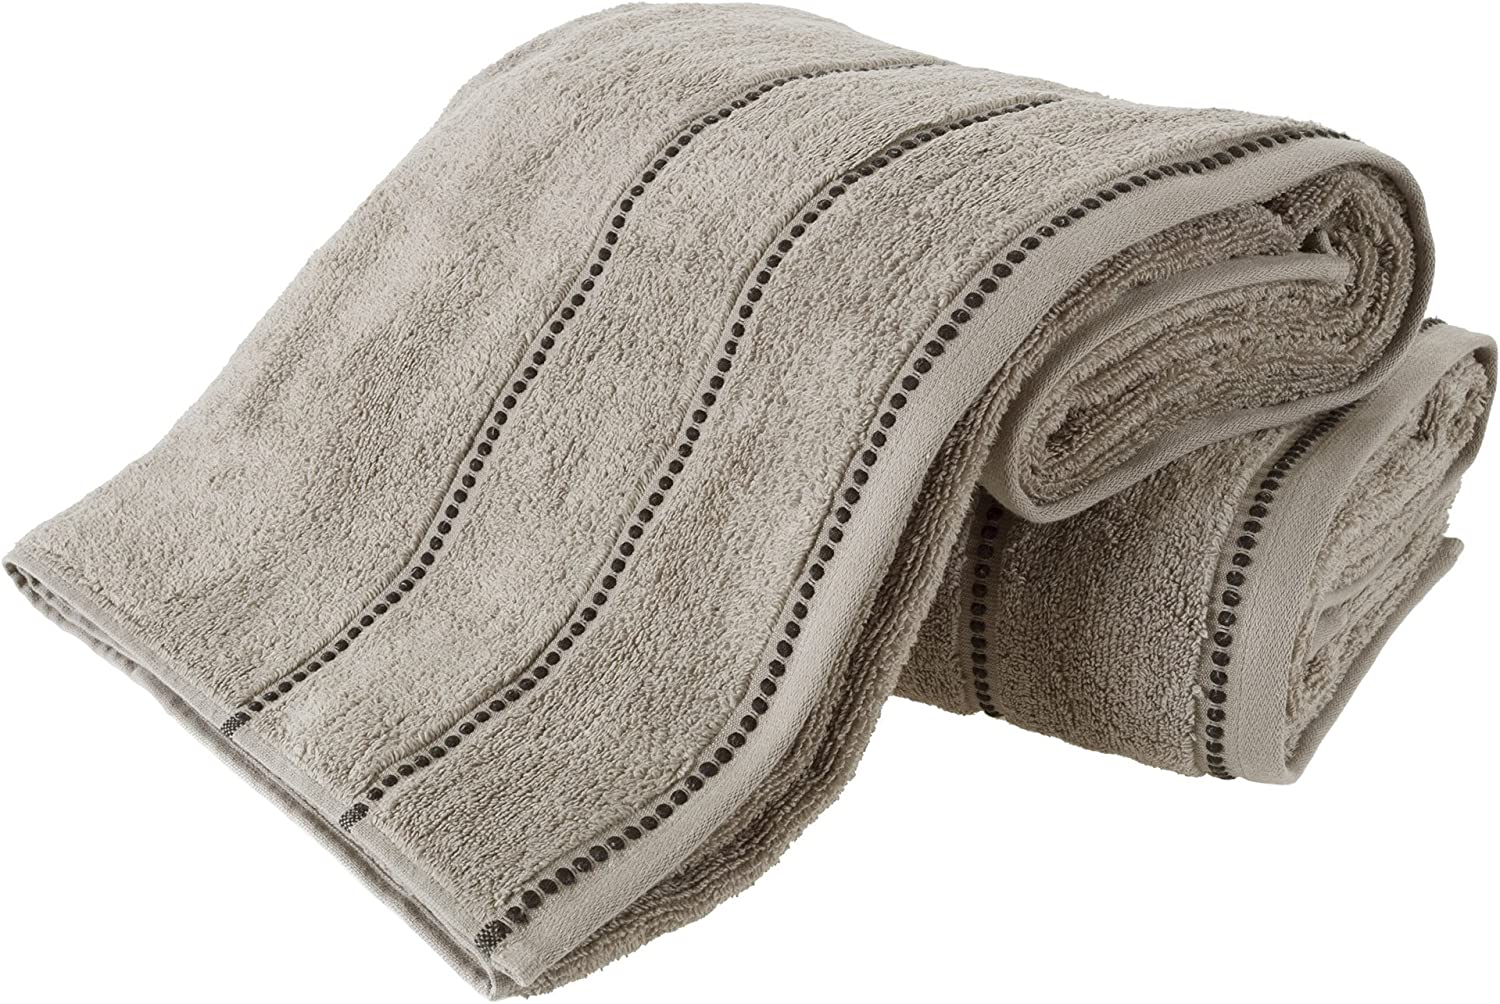 Luxury Cotton Towel Set- 2 Piece Bath Sheet Set Made From 100% Zero Twist Cotton- Quick Dry, Soft and Absorbent By Lavish Home (Taupe / Black)